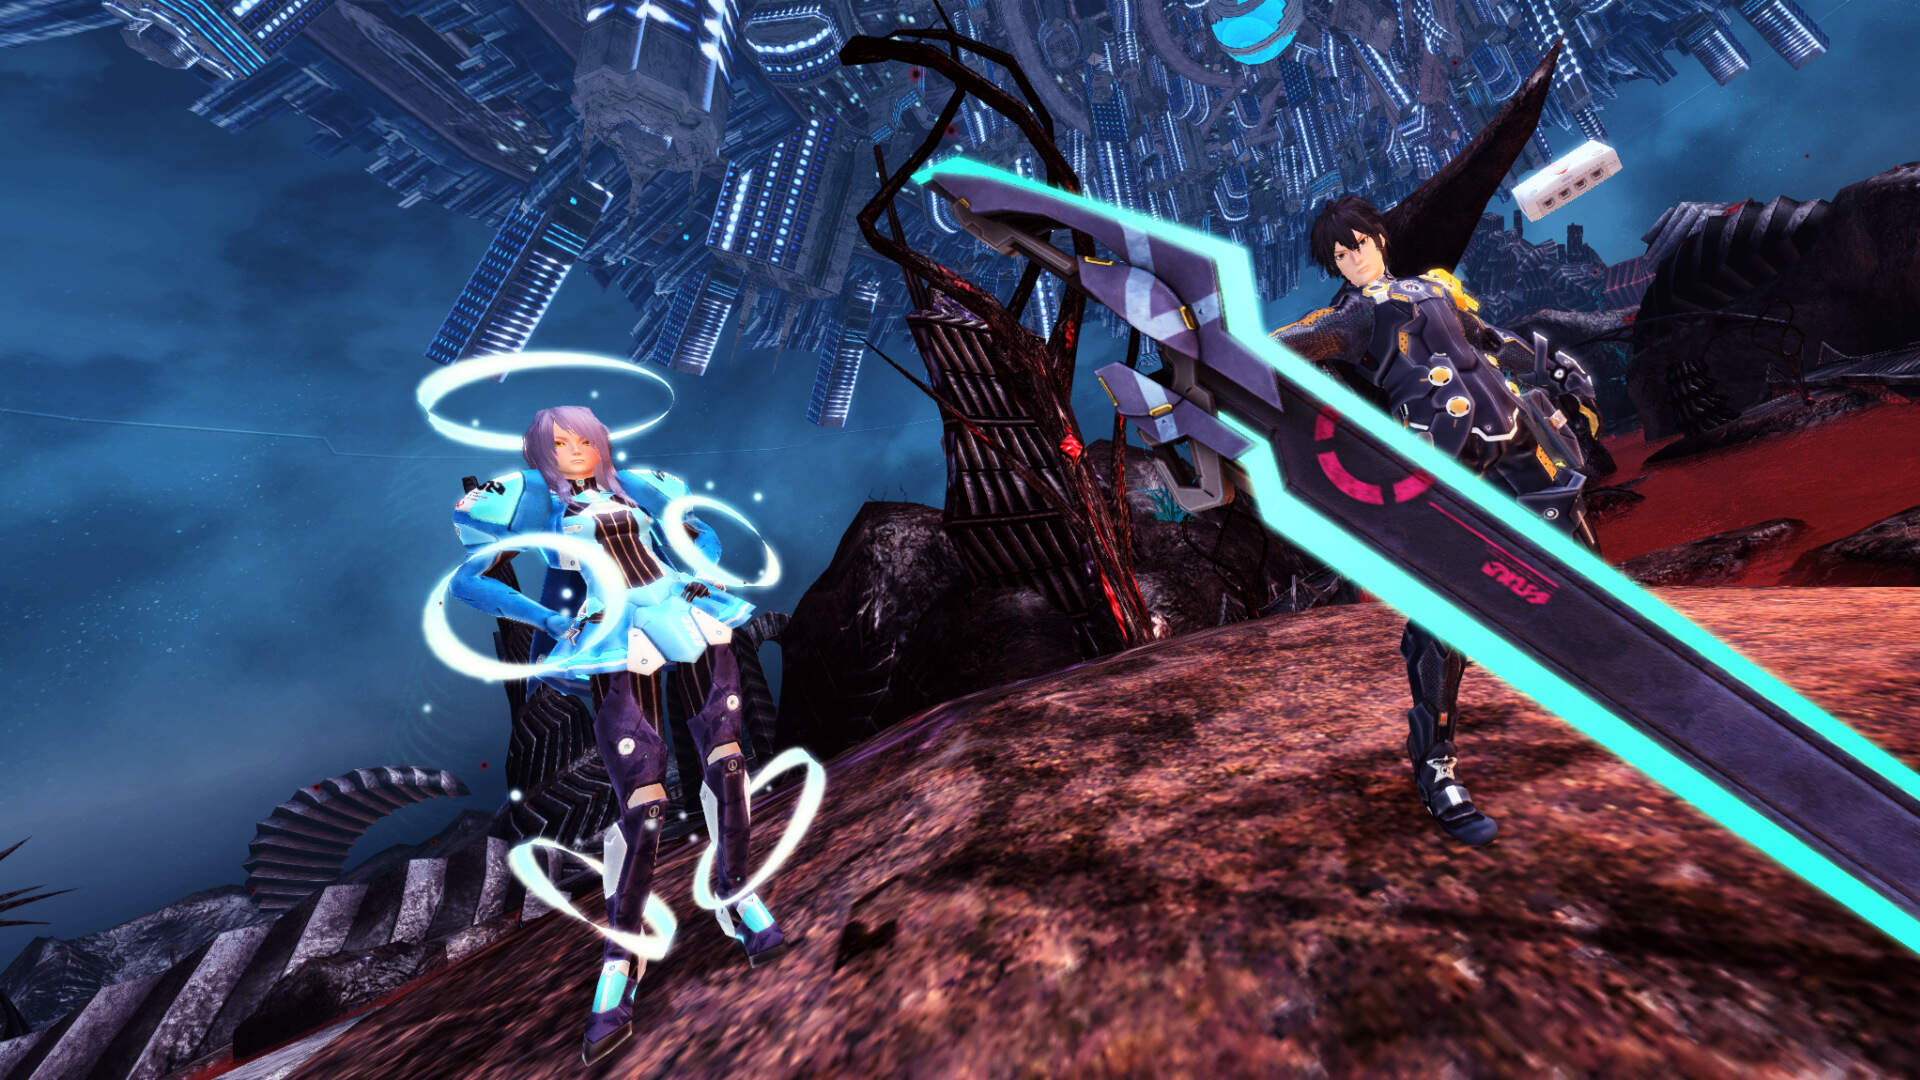 Phantasy Star Online 2 Manual Points to Potential Steam Release